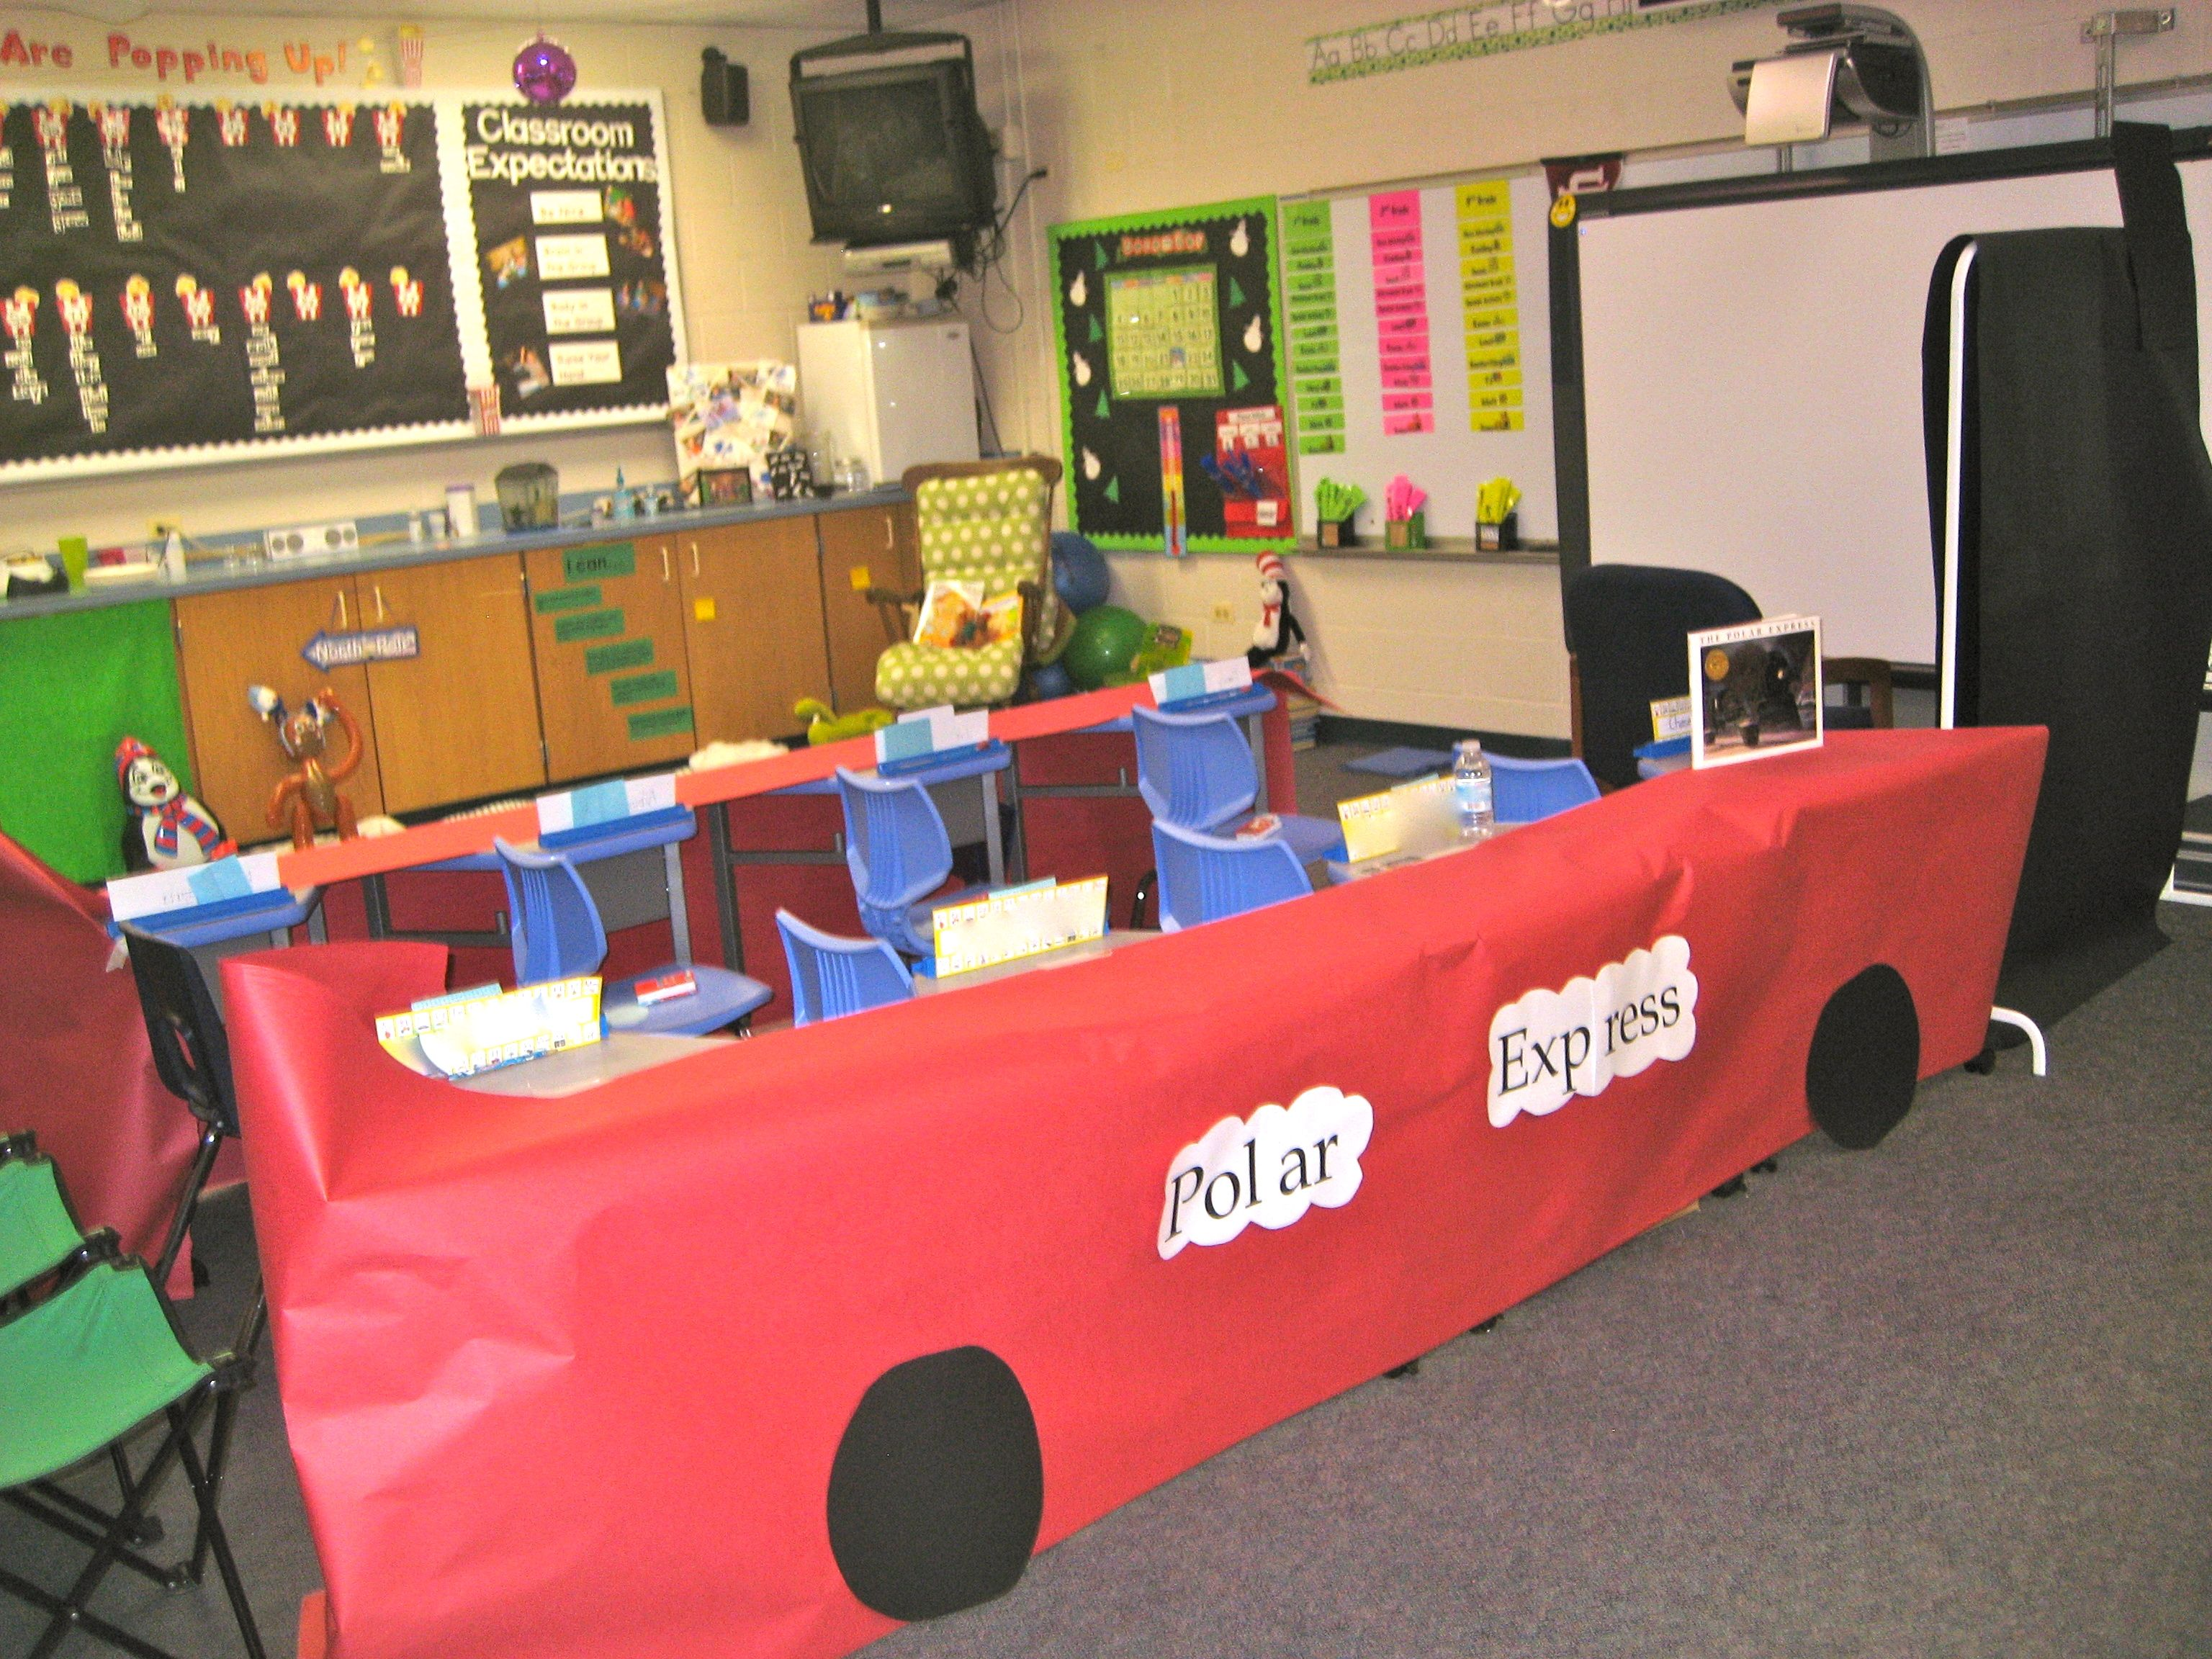 Create The Polar Express Train In Your Room Using Butcher